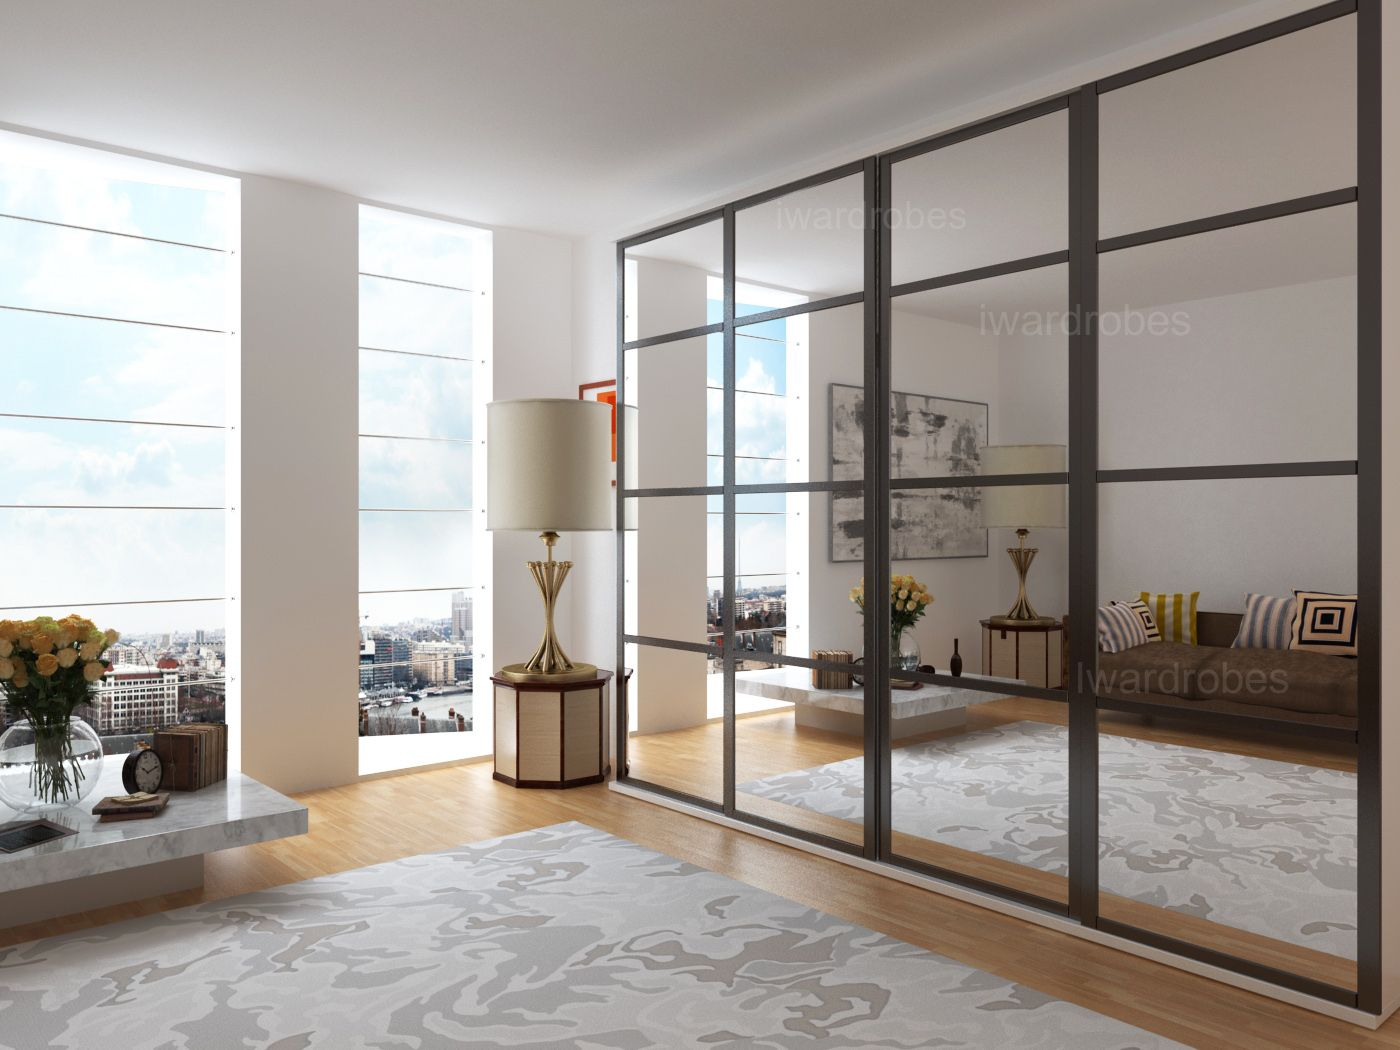 image result for mirrored wardrobes no 61 fitted bedroom rh pinterest com